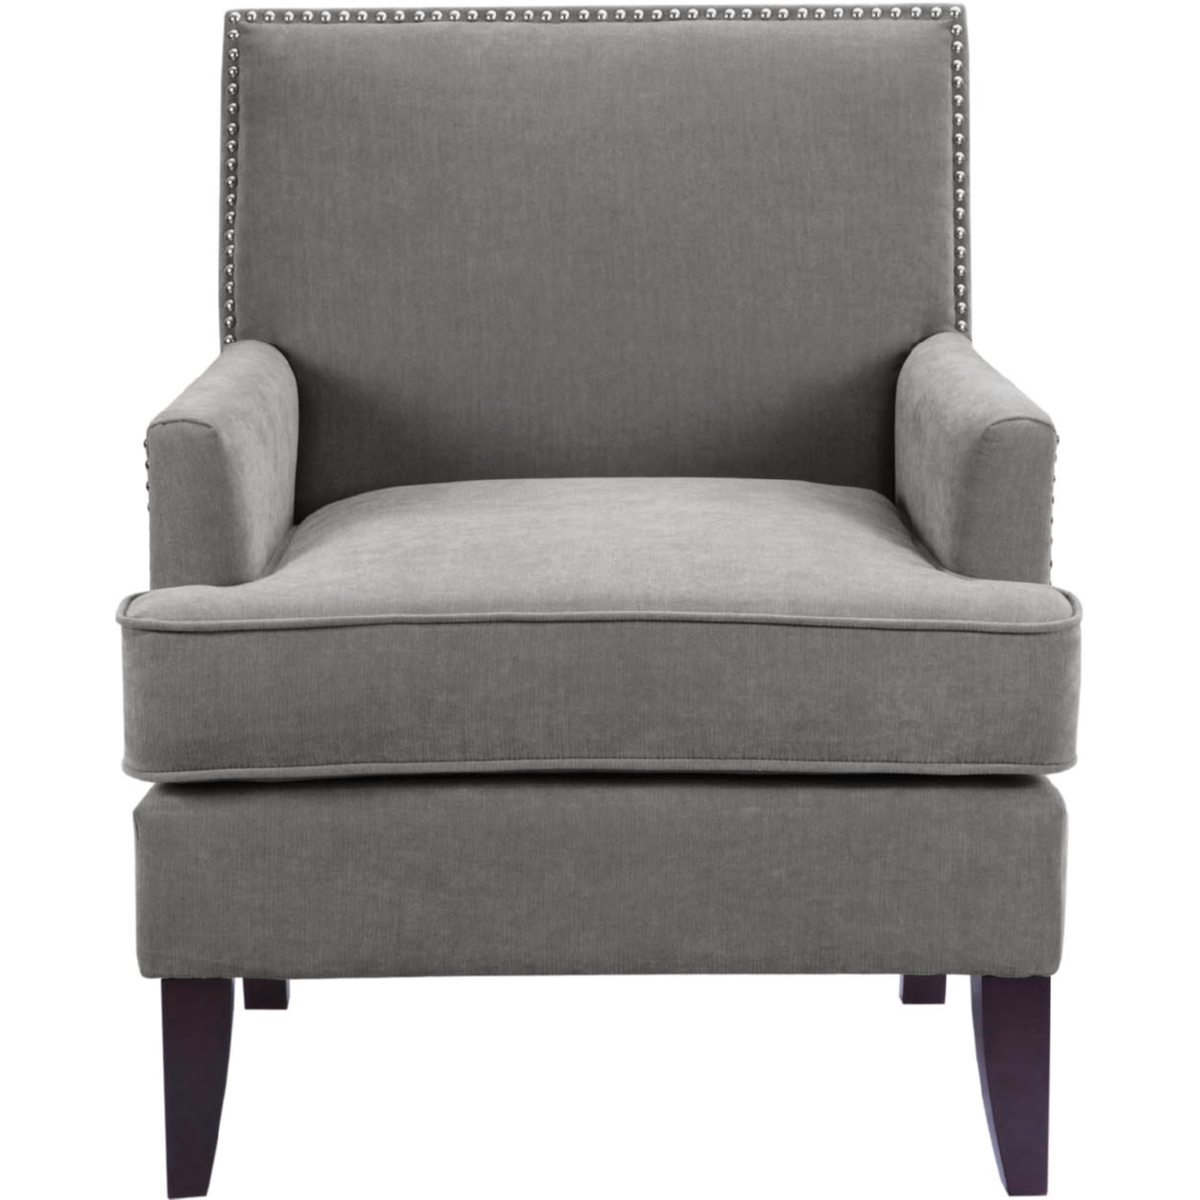 Genial Madison Park Colton Track Arm Club Chair In Gray Fabric W/ Nailhead On  Merlot Legs